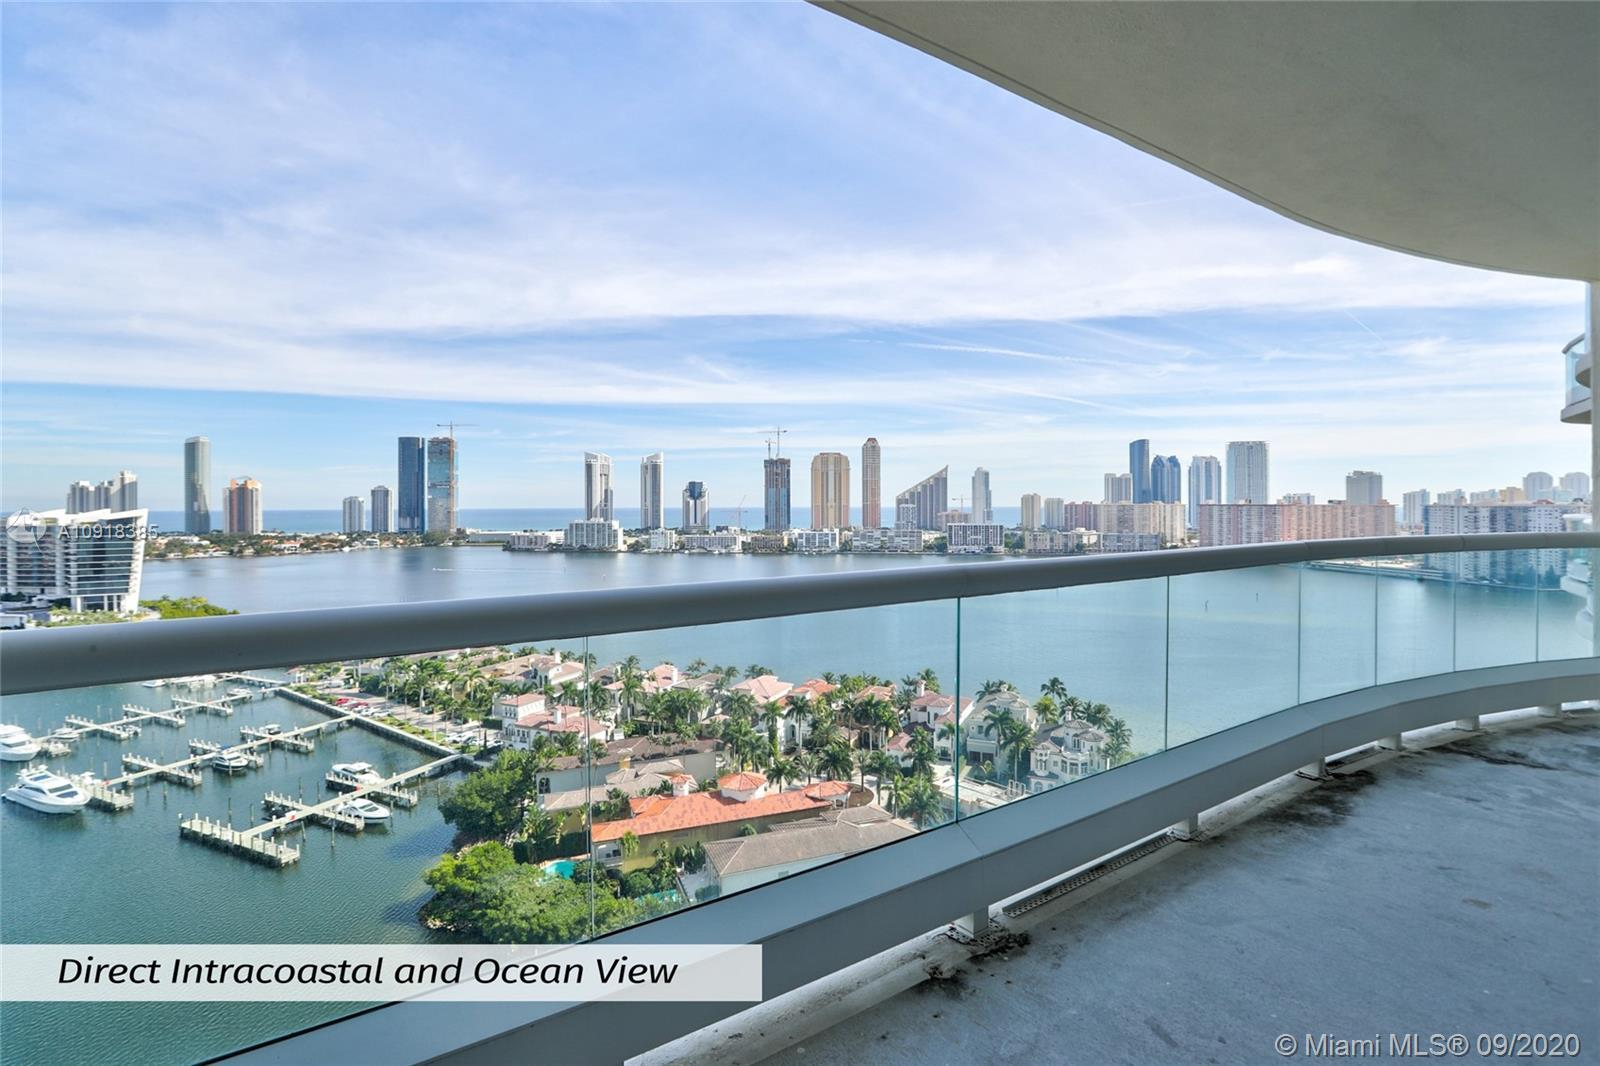 Take your private elevator to this true flow-thru sky residence w/Direct Intracoastal & Ocean views,